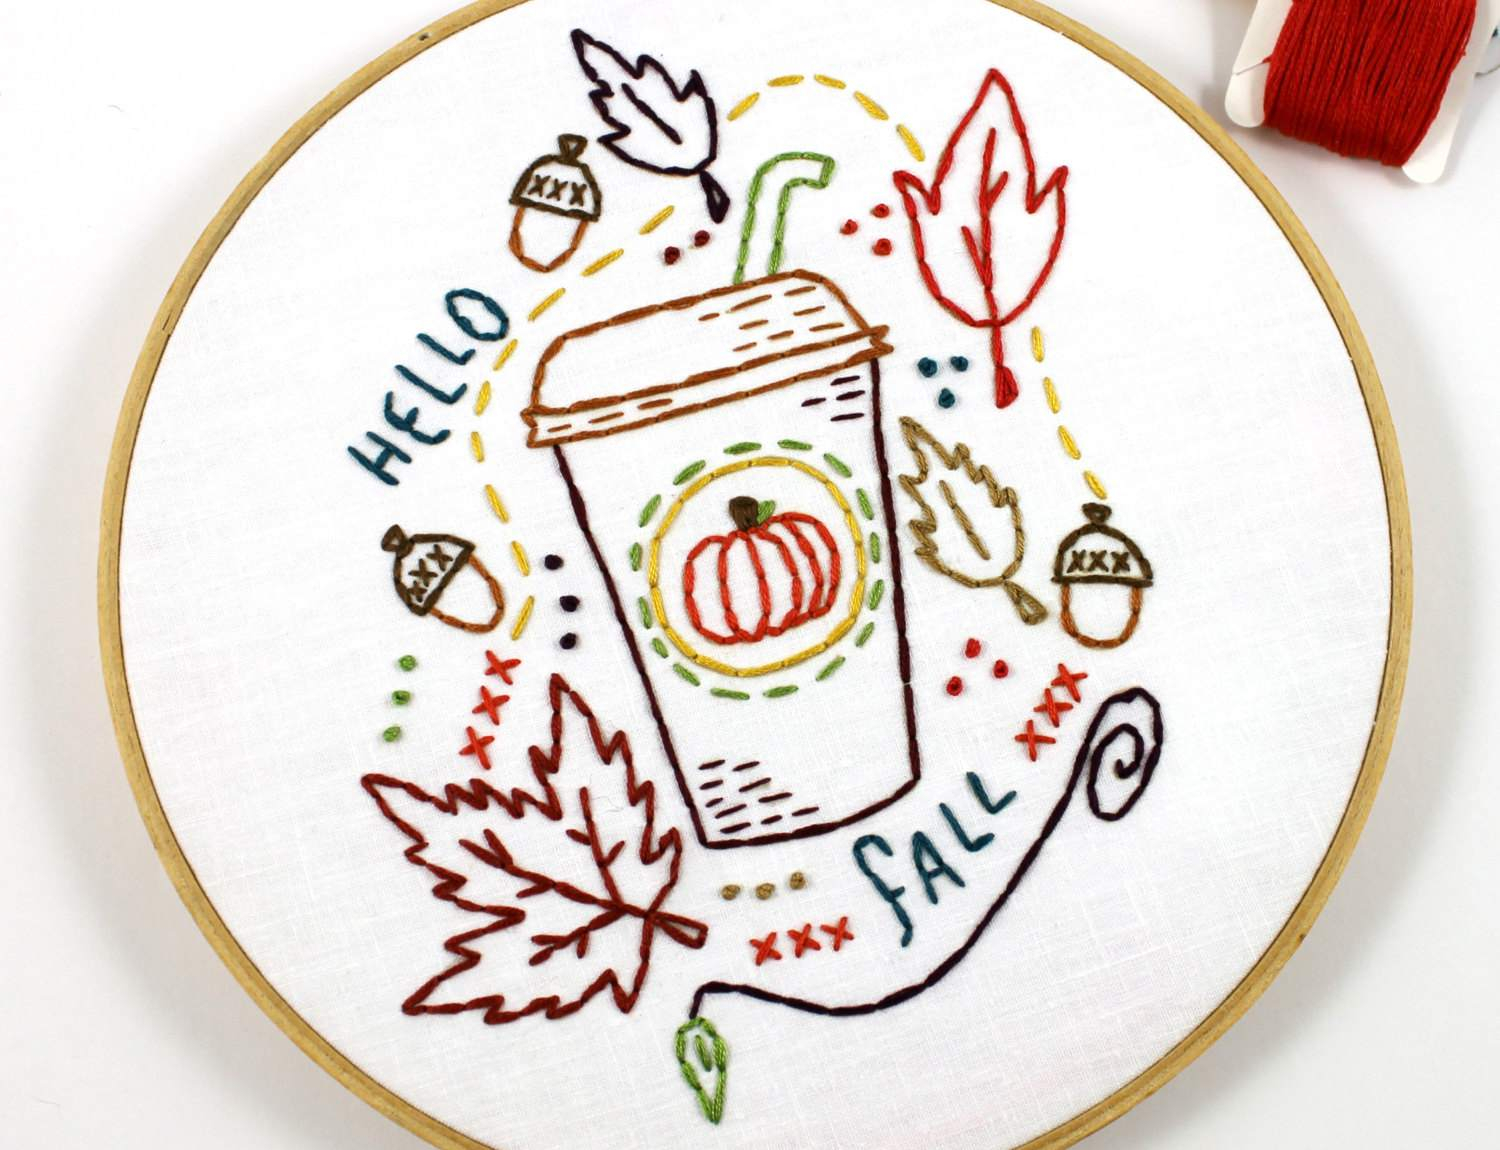 How To Design Embroidery Patterns By Hand 10 Hand Embroidery Patterns For Autumn Stitching